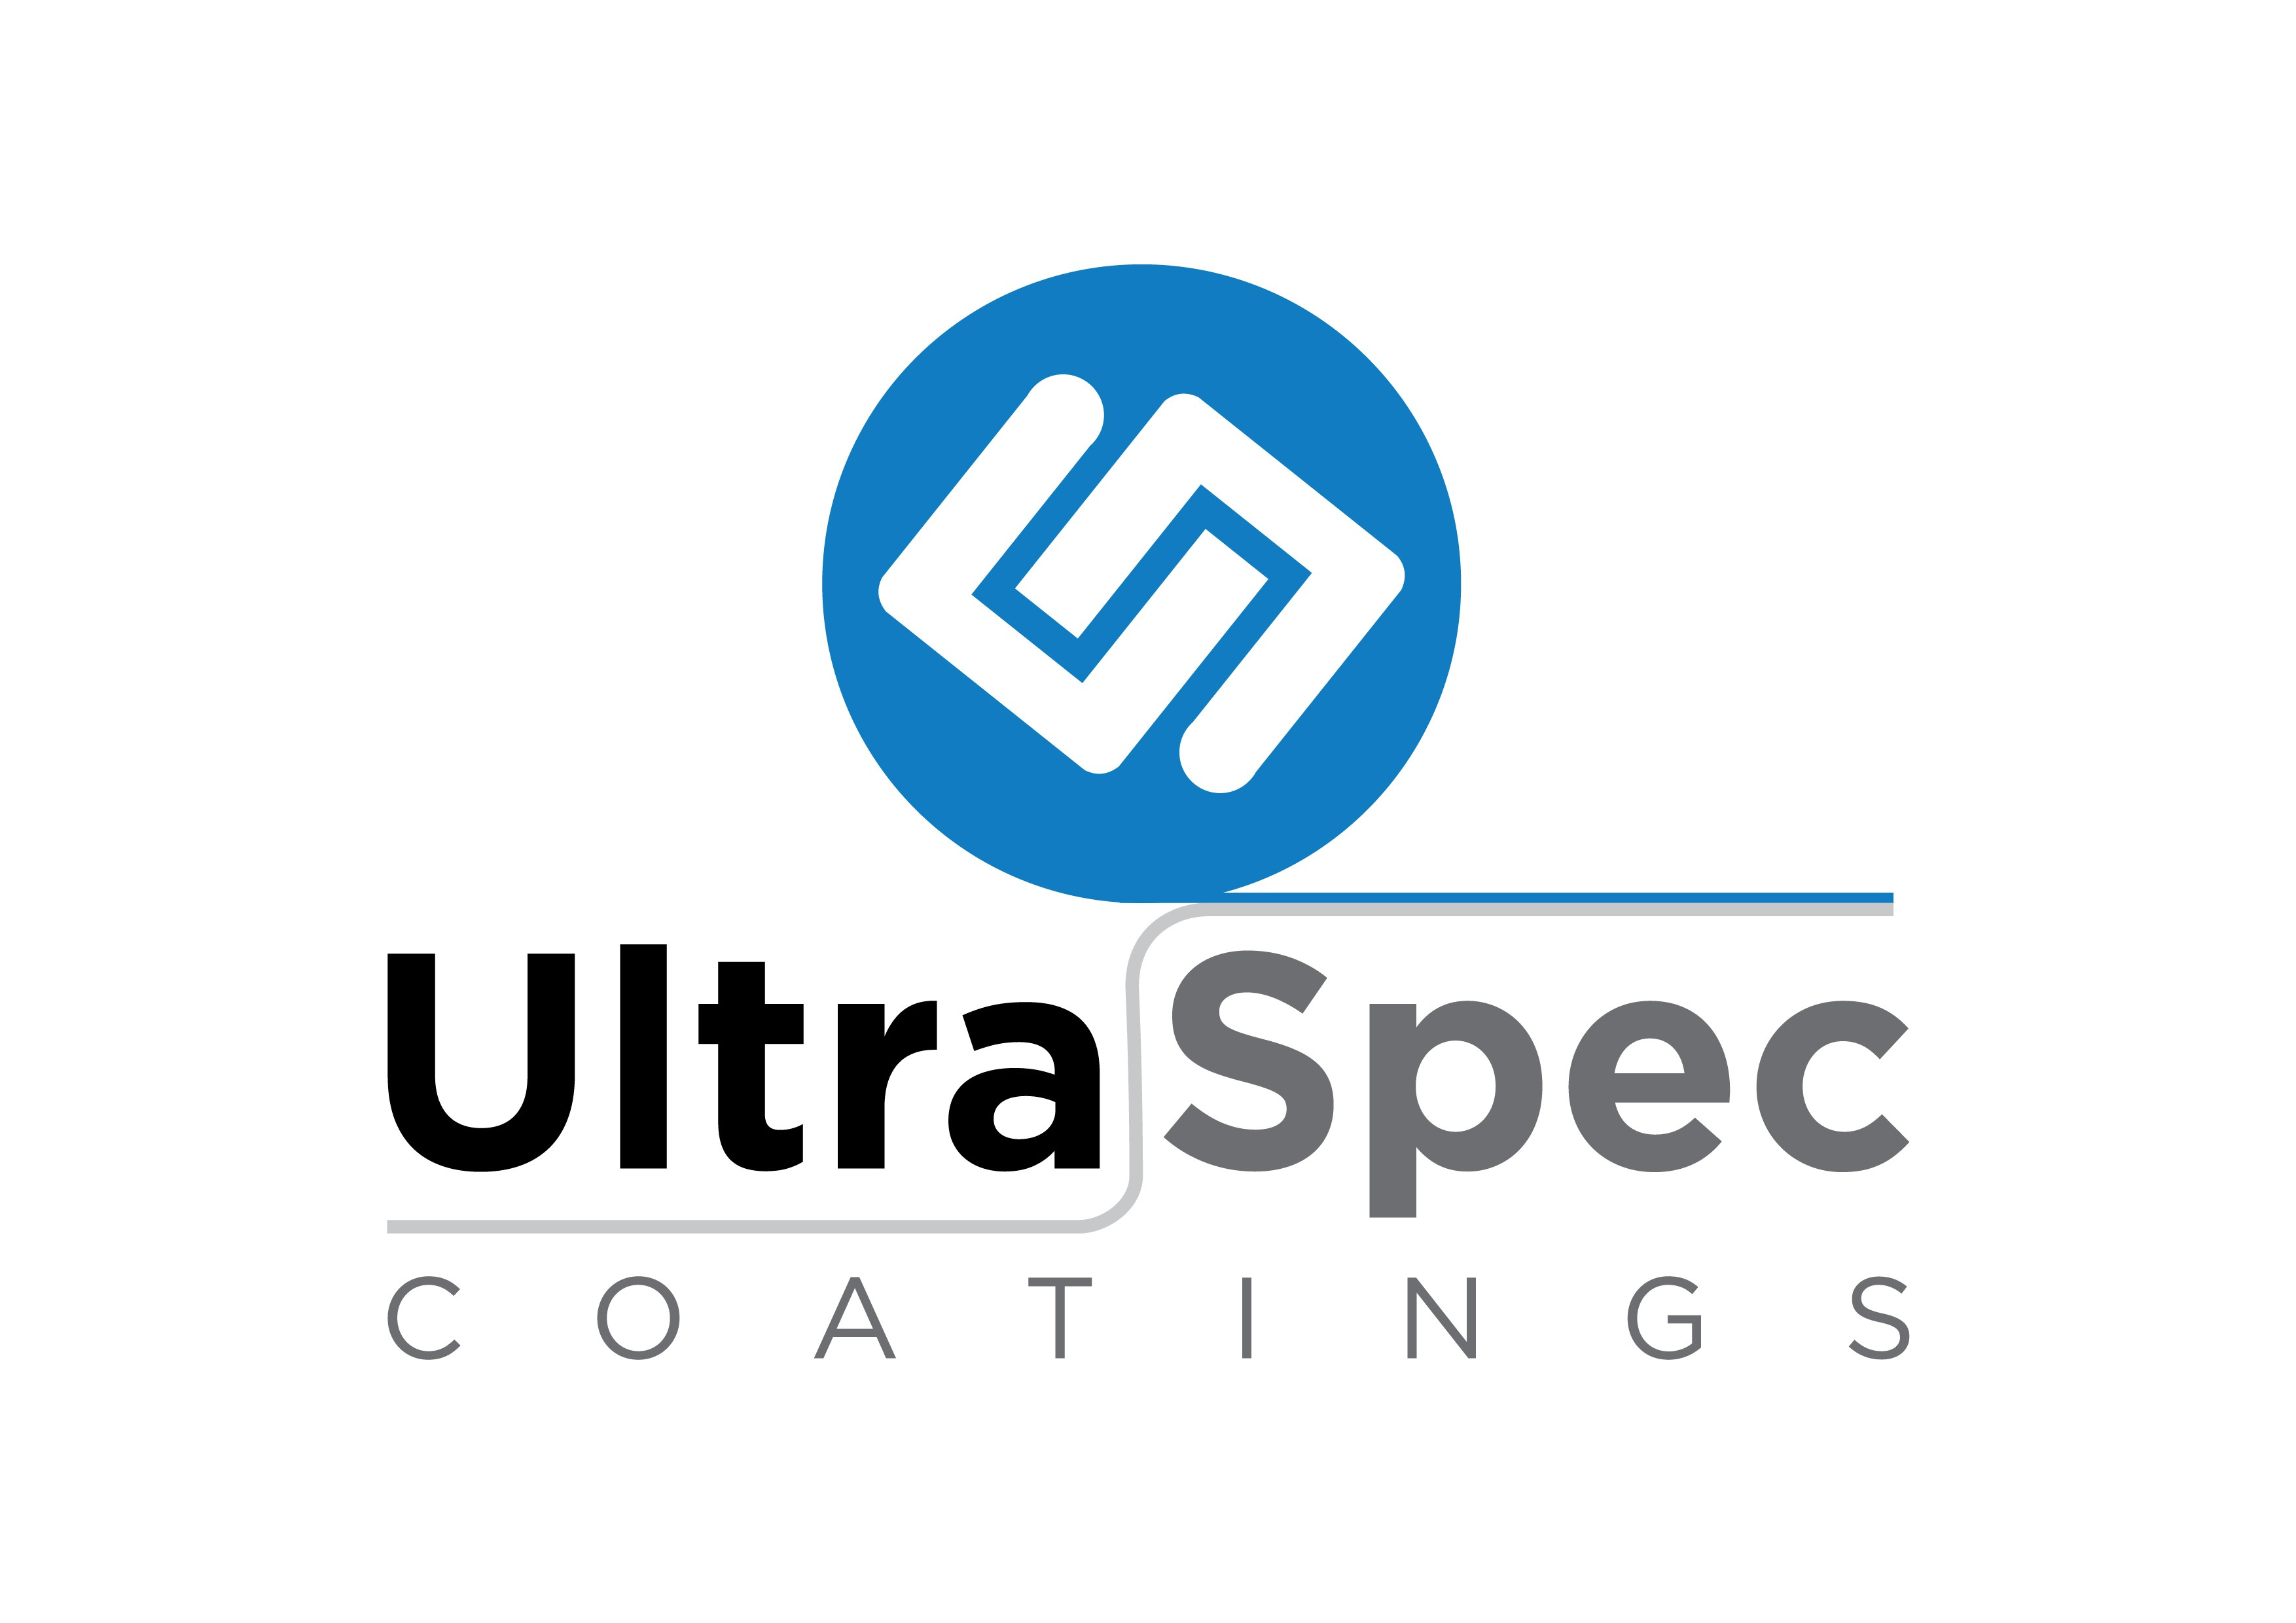 Design a bold logo for an adhesive coating company